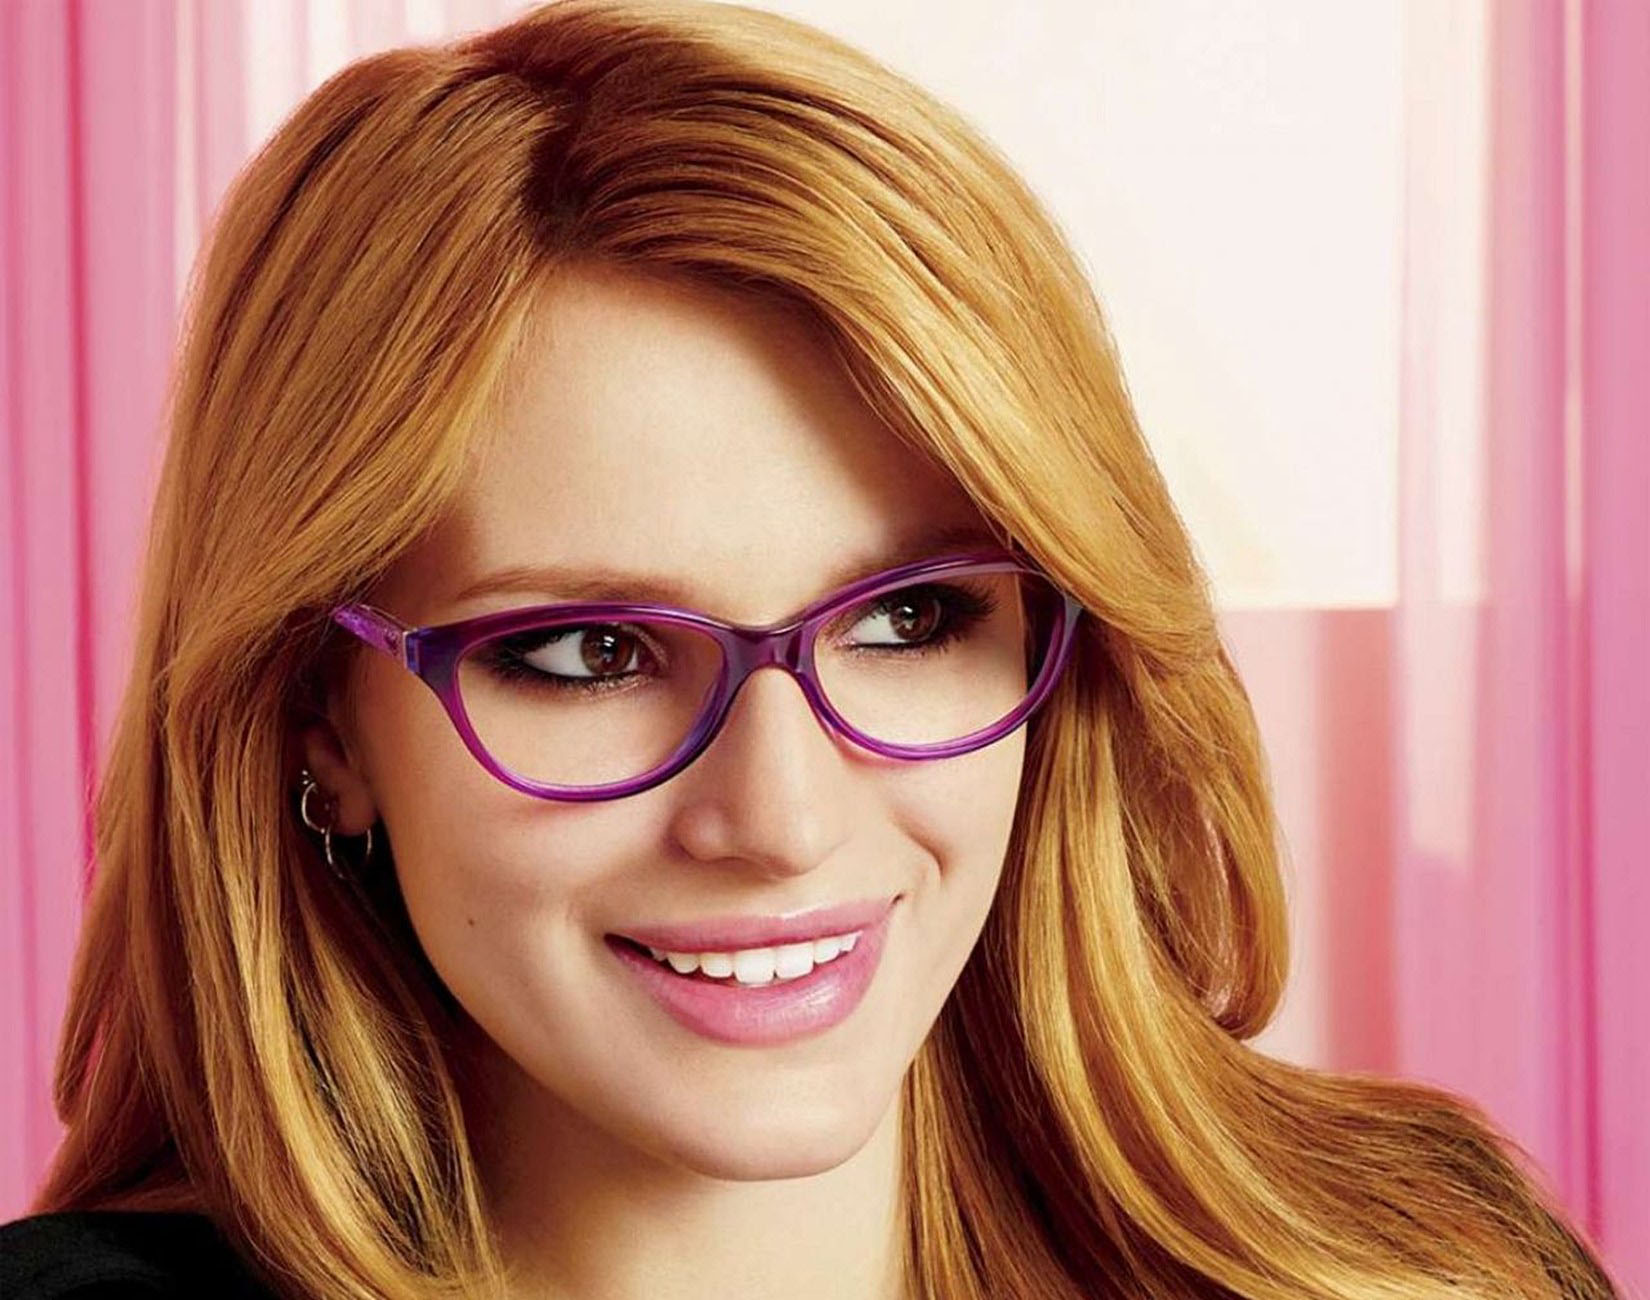 bella-thorne-purple-glasses-wallpaper-hd